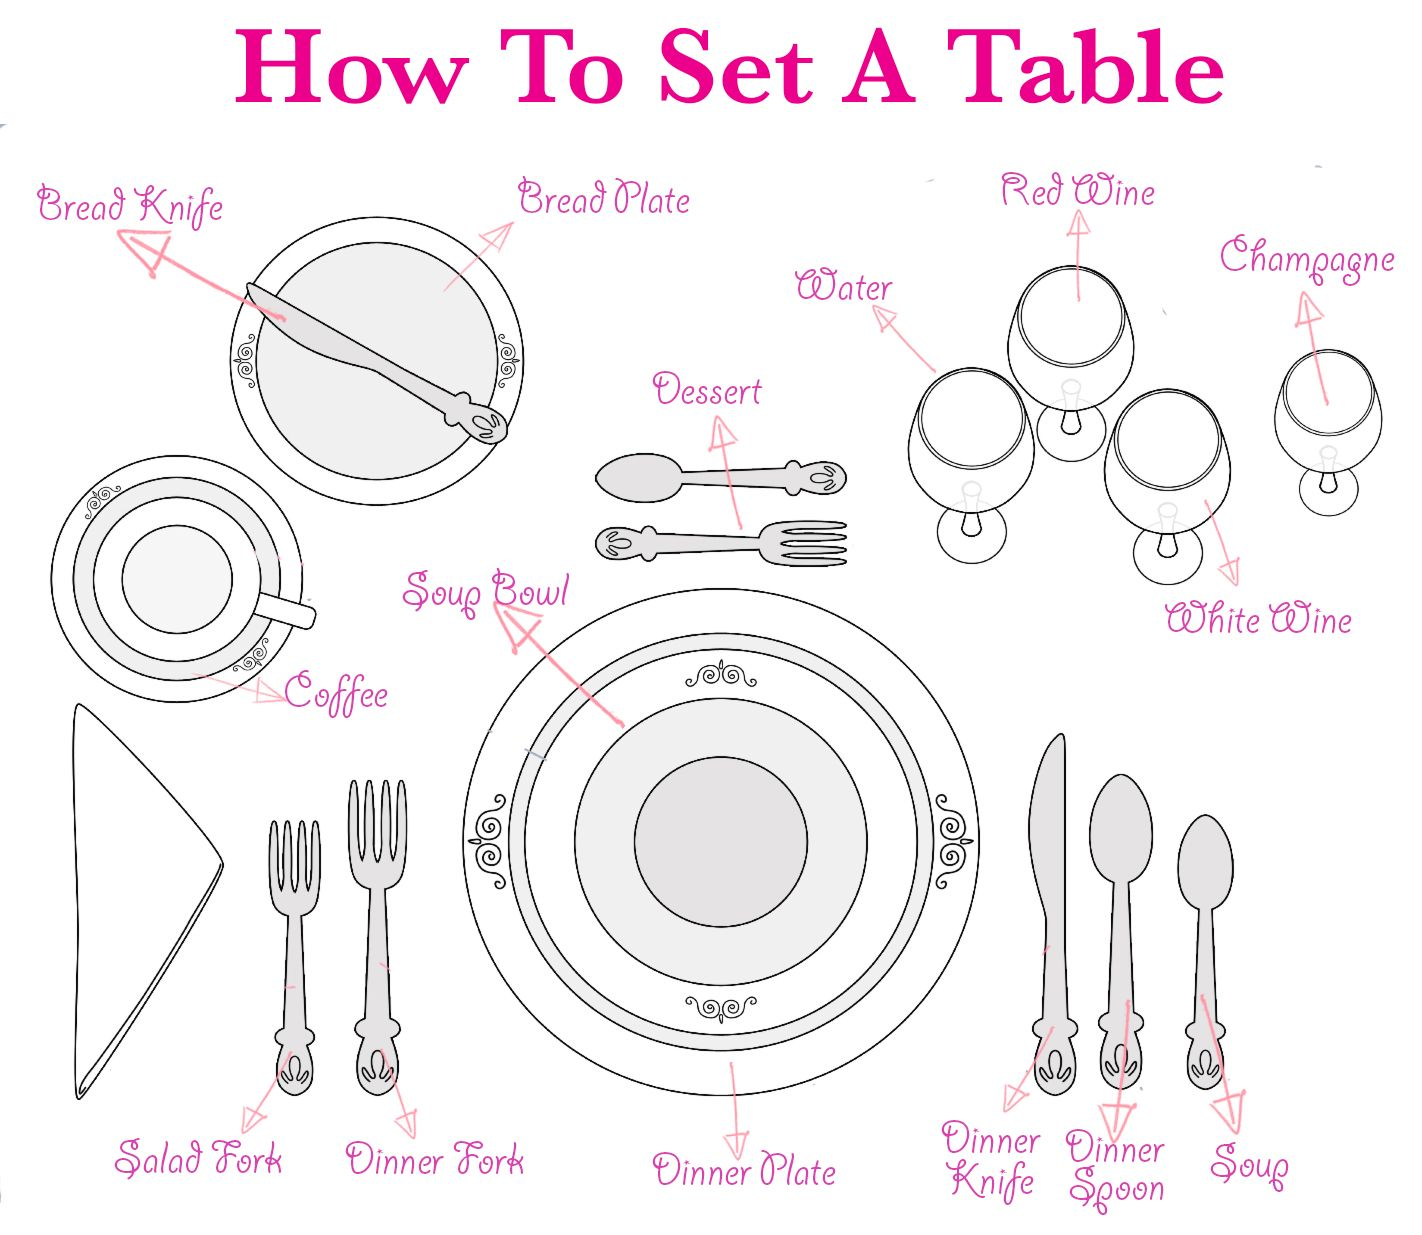 how to set a table setting ideas inspiration pinterest dinner formal shop room ideas forks knives properly  sc 1 st  Pinterest & 10 Gorgeous Table Setting Ideas + How To Set Your Table | Table ...